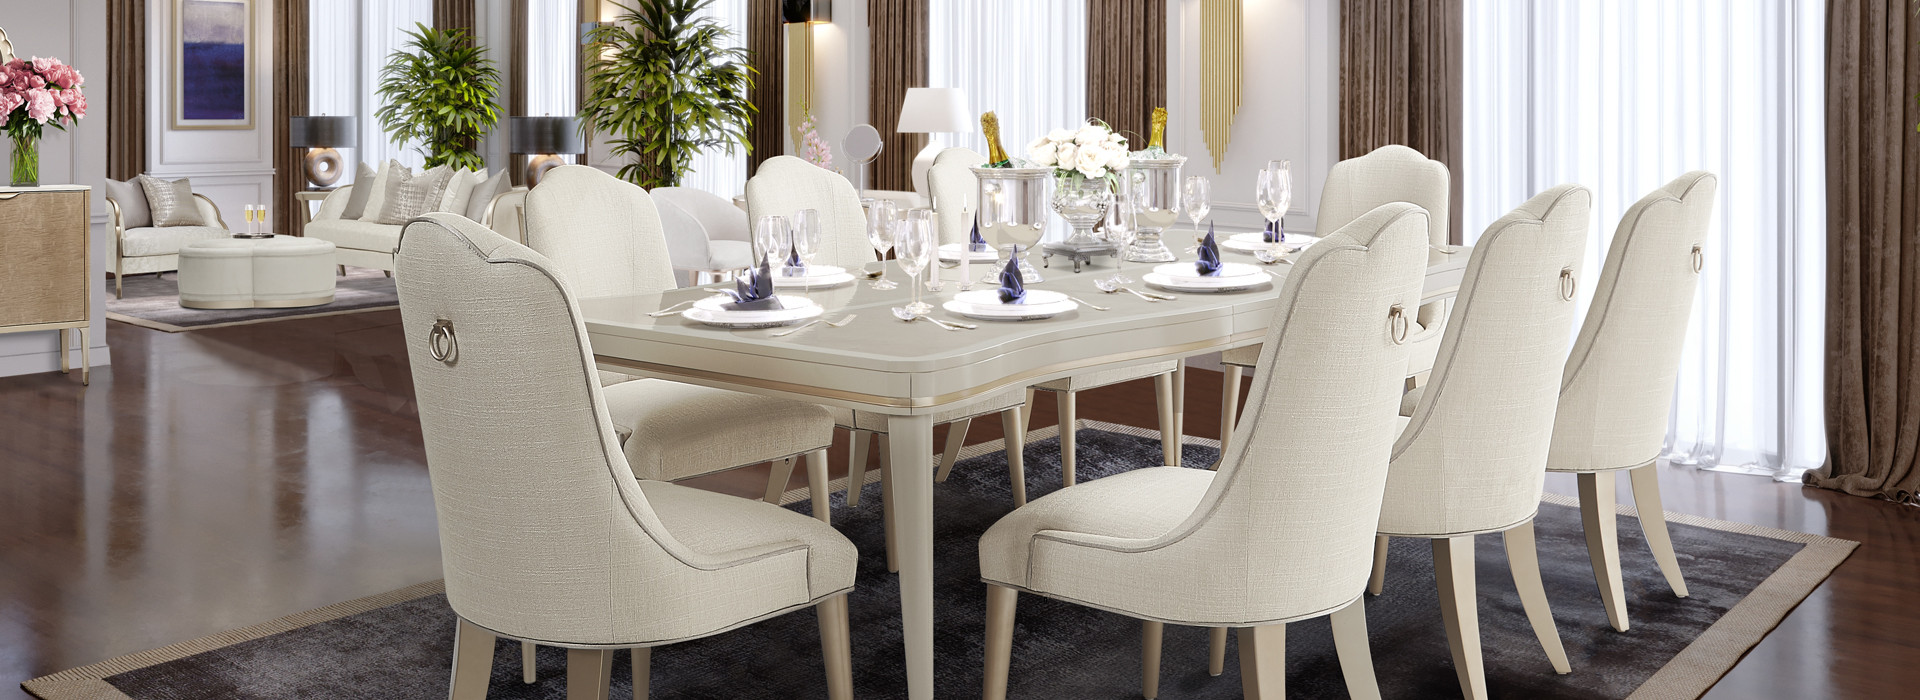 Family Gatherings Or Intimate Dinners, The Dining Room Is A Place To  Convene And Enjoy A Meal With Friends And Loved Ones, Making Memories That  Can Last A ...